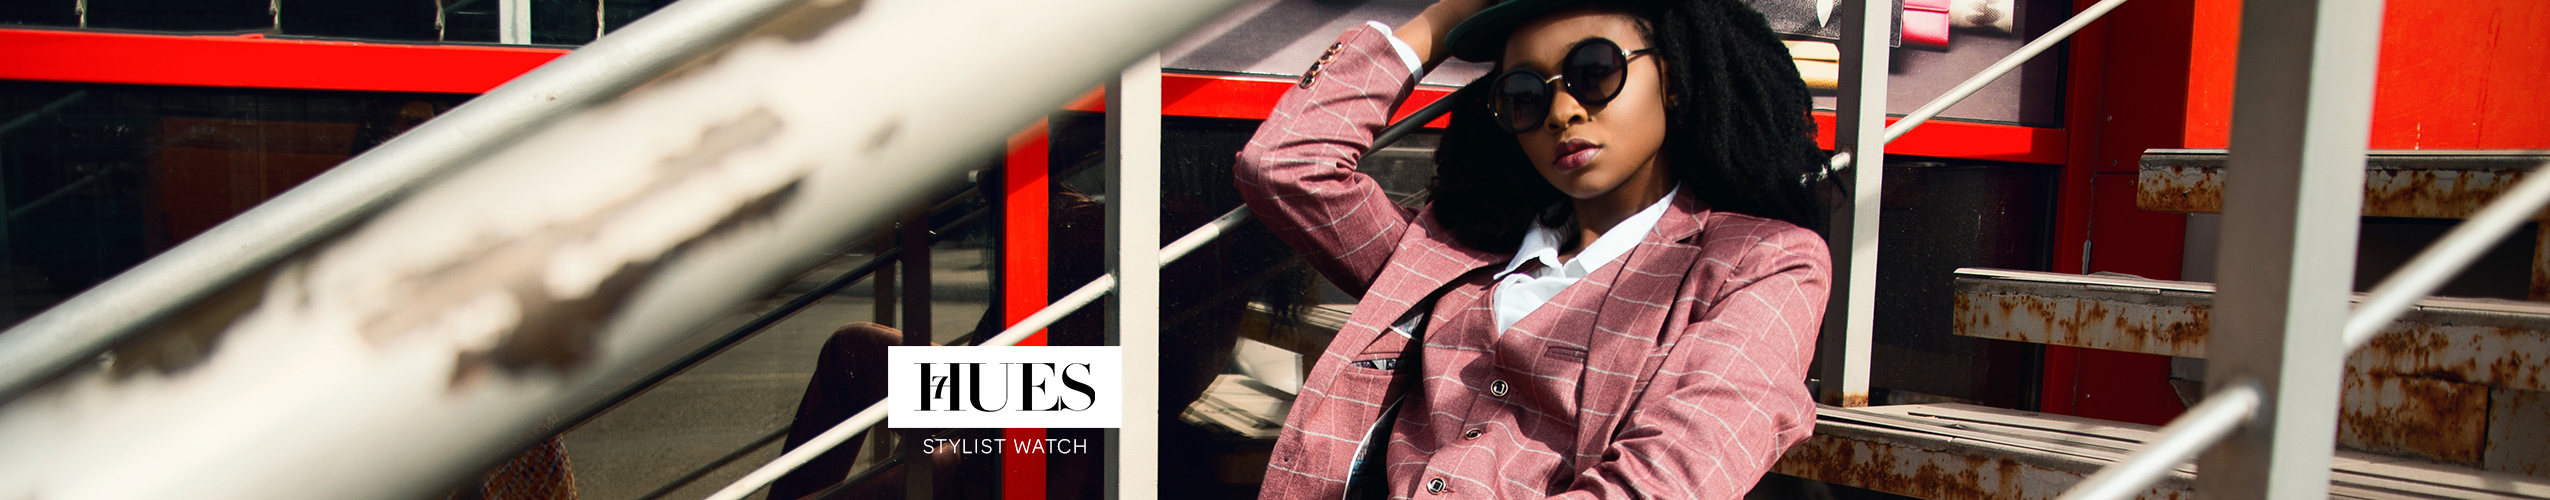 mode-STYLIST-WATCH-page-banners